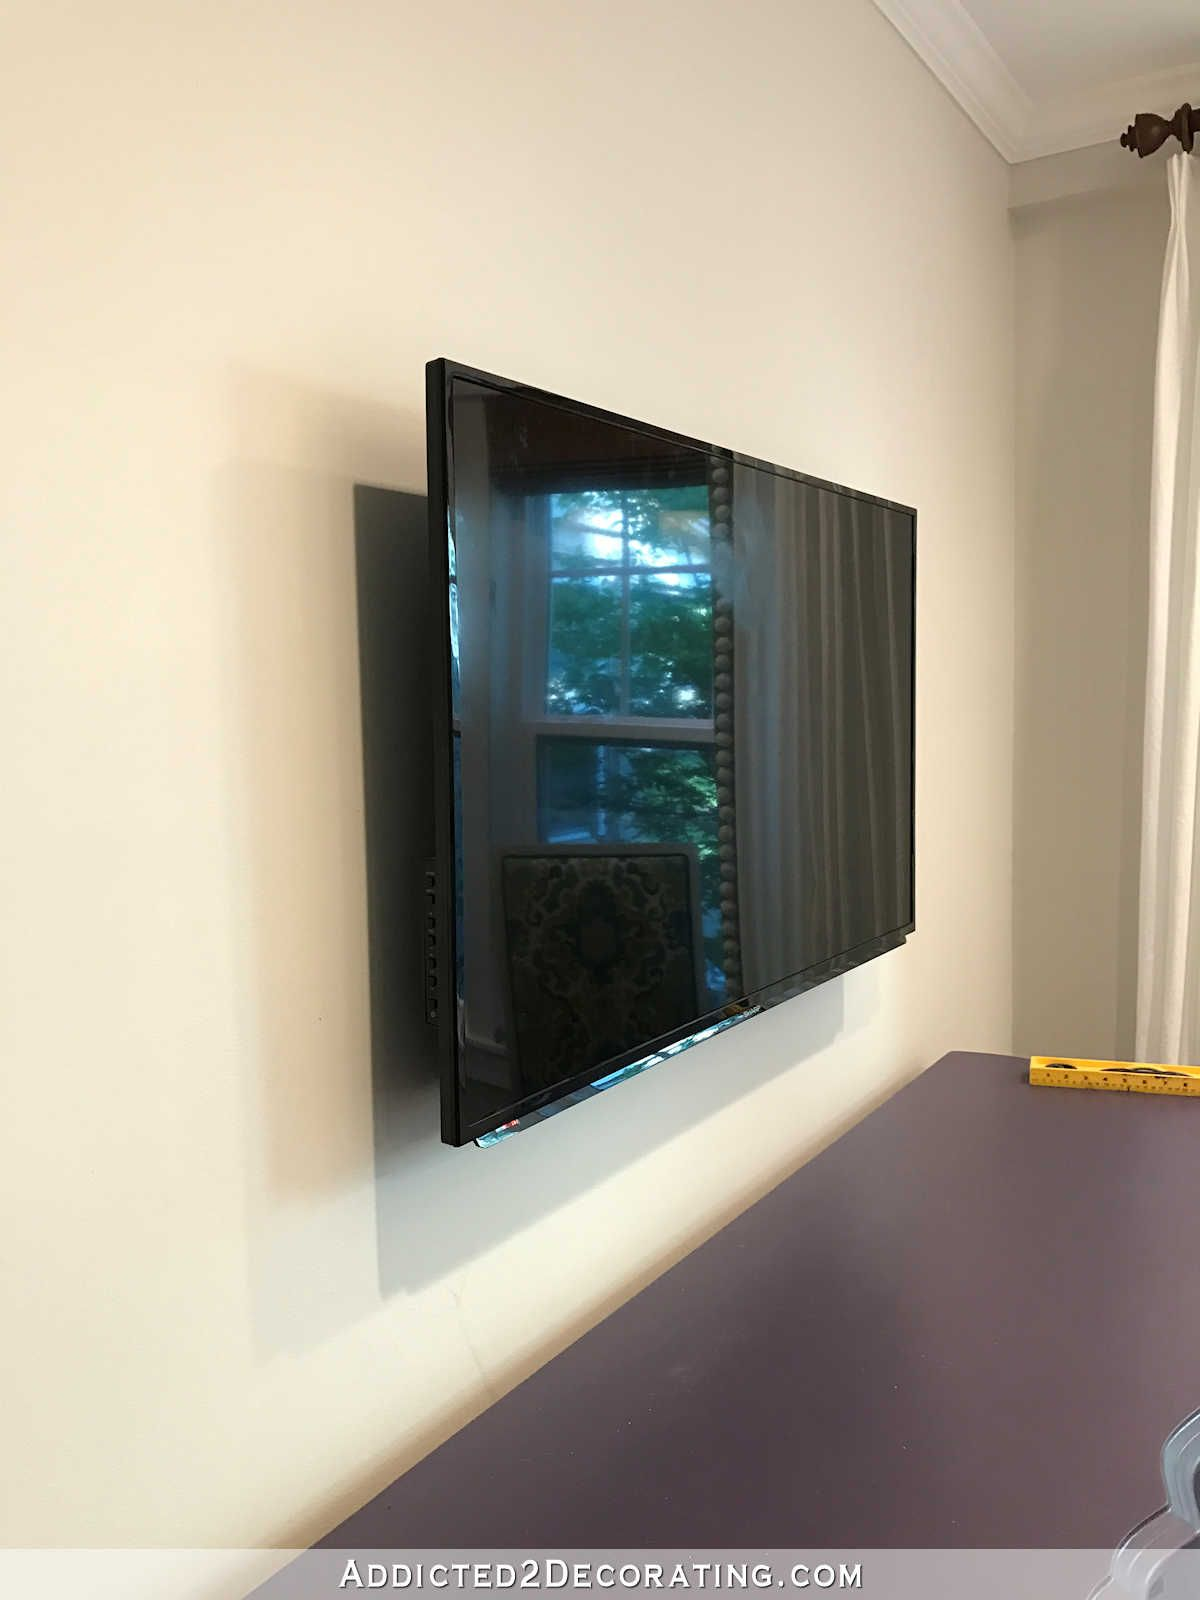 How To Build An Easy Diy Frame For A Wall Mounted Flat Screen Tv 15 On With Low Profile Mounting Hardware